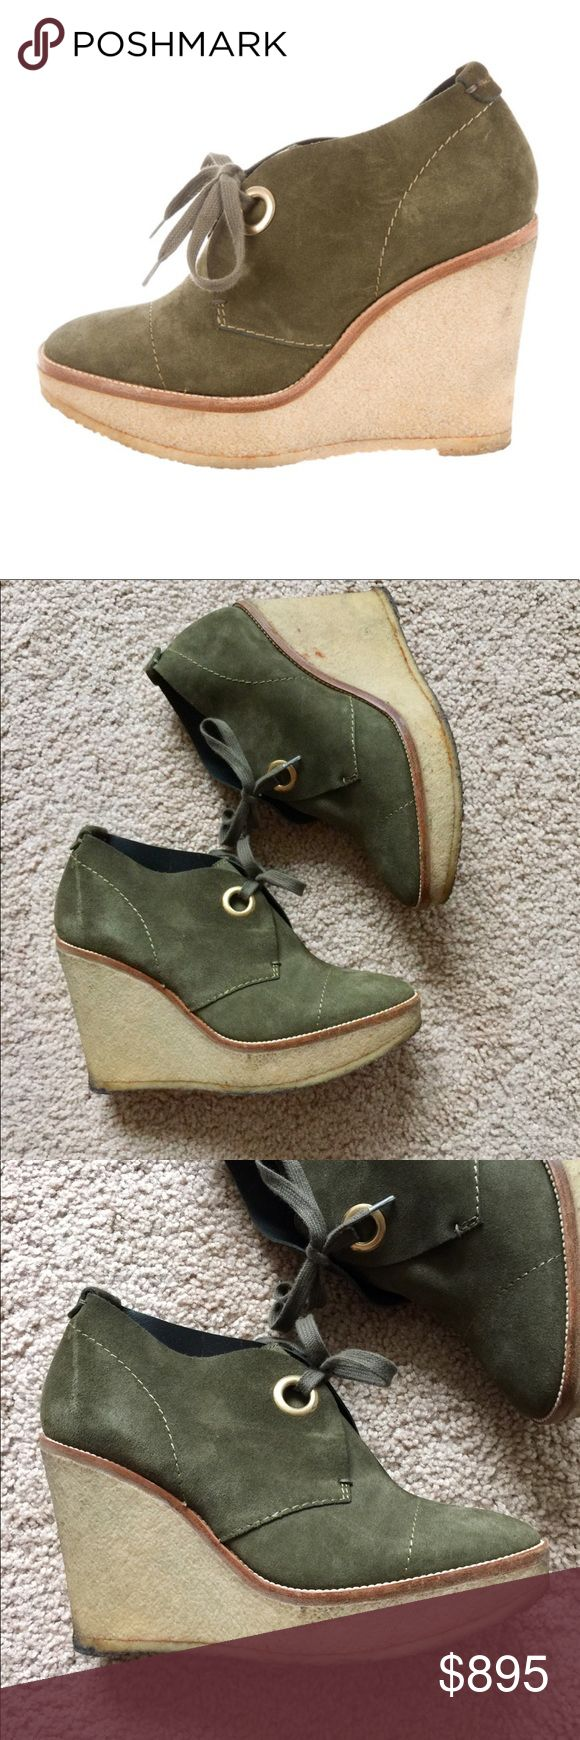 ❗️Yves Saint Laurent Authentic Leathr Wedges $1095 ❗️Yves Saint Laurent YSL Authentic Olive Green Leather Wedges. Size 38. Retails $1095! In great condition light wear as shown. Feel free to make an offer! Selling to the first good offer I receive. Discounts on bundles. Large Cleanout Sale!   ❤️Posh Ambassador  ❤️Over 8,000 Sales ❤️Fast Shipping Yves Saint Laurent Shoes Wedges